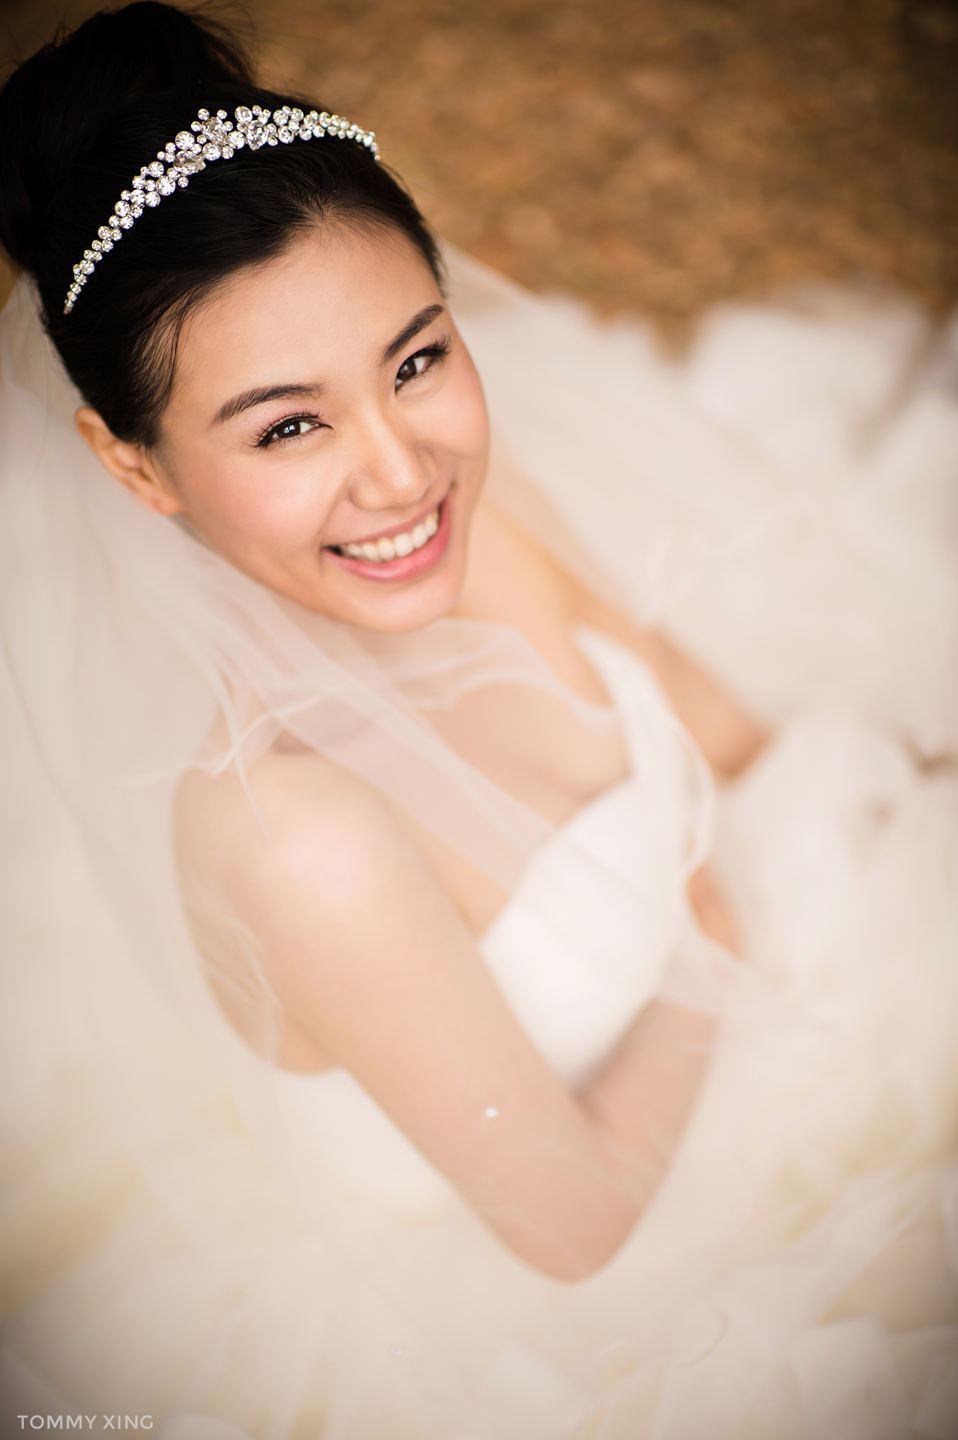 Los Angeles Wedding 洛杉矶婚纱照 Tommy Xing Photography 17.jpg